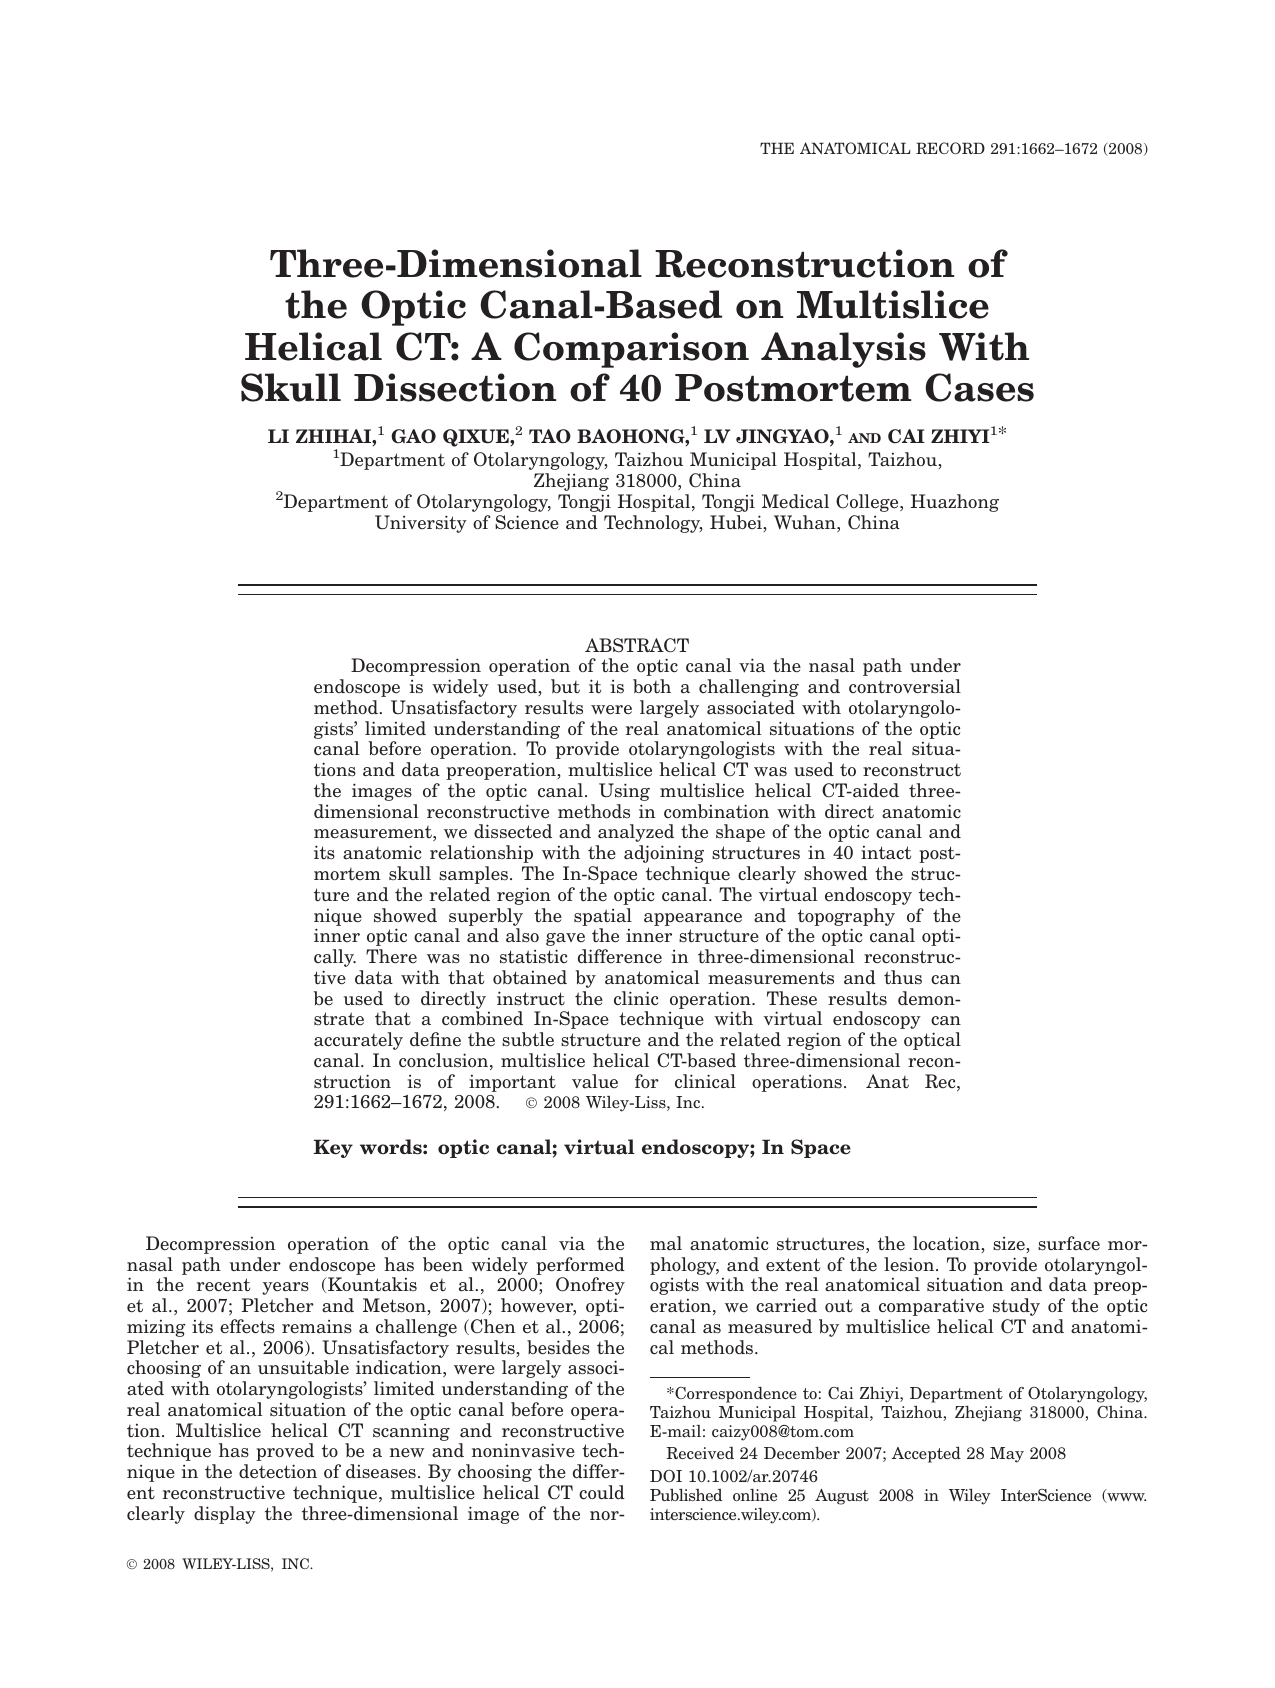 Three-Dimensional Reconstruction of the Optic Canal-Based on ...